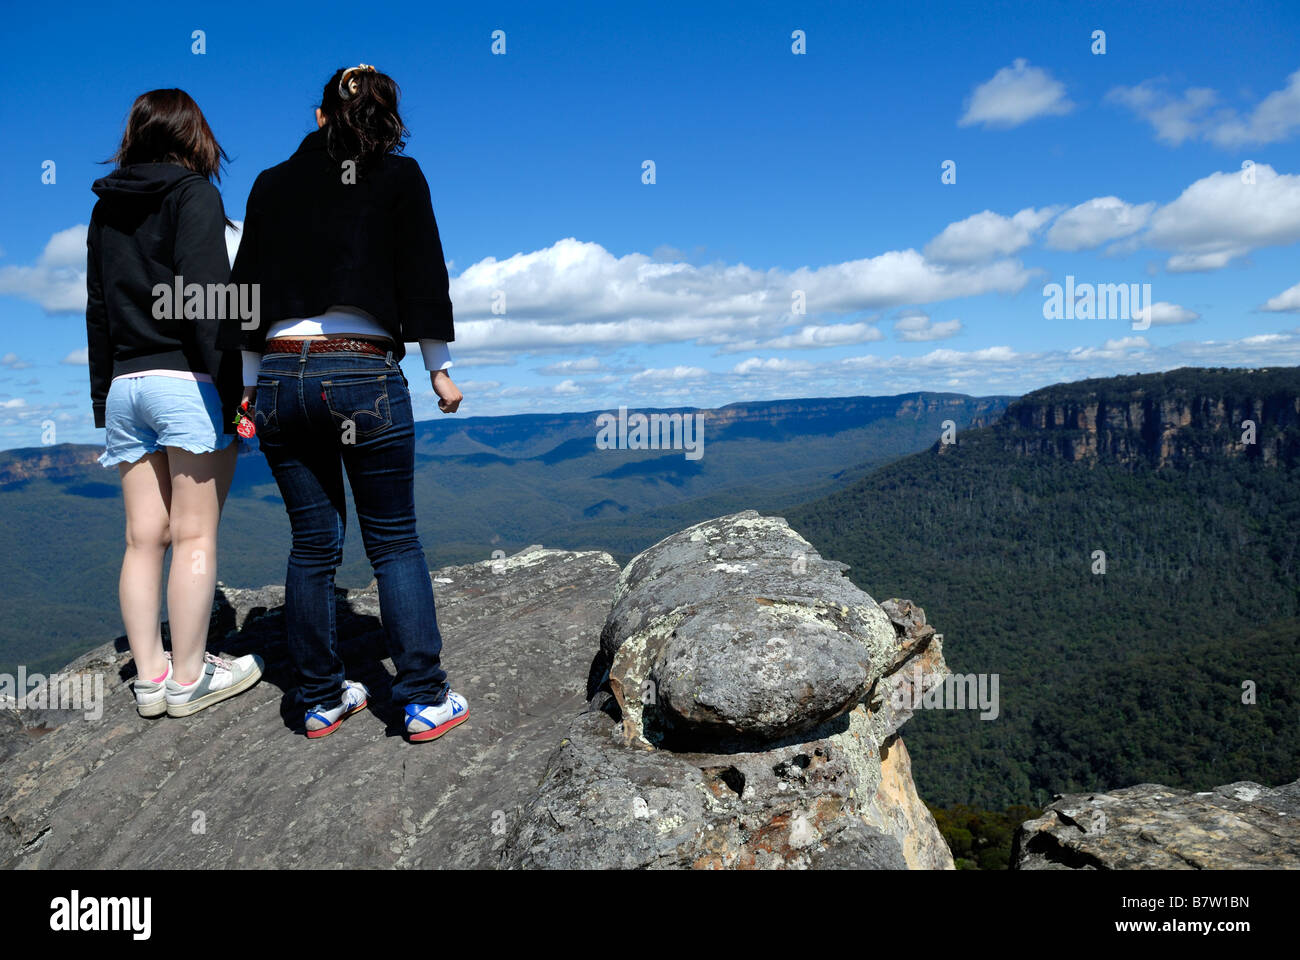 Tourists standing very tentatively near edge of cliff. Blue Mountains, Katoomba, Australia - Stock Image